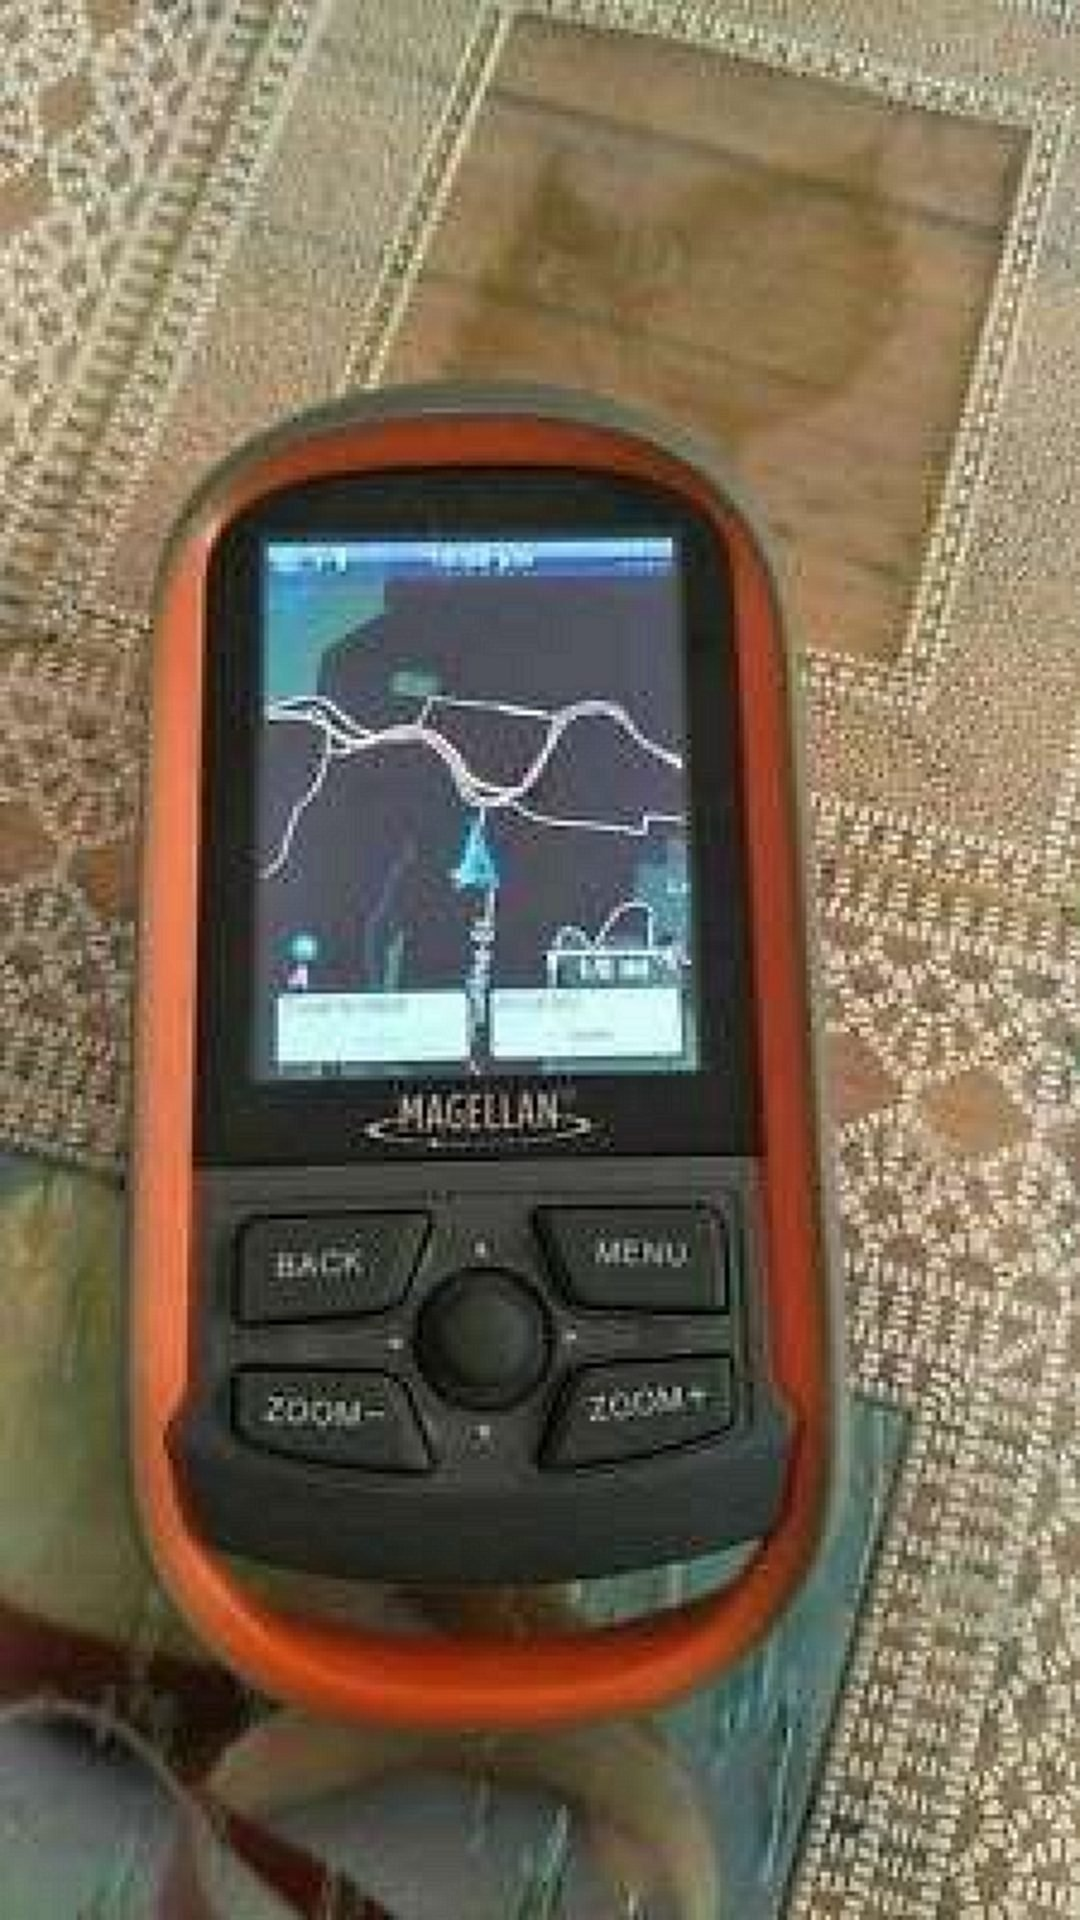 Magellan eXplorist 310 Fishing Hot Spots GPS